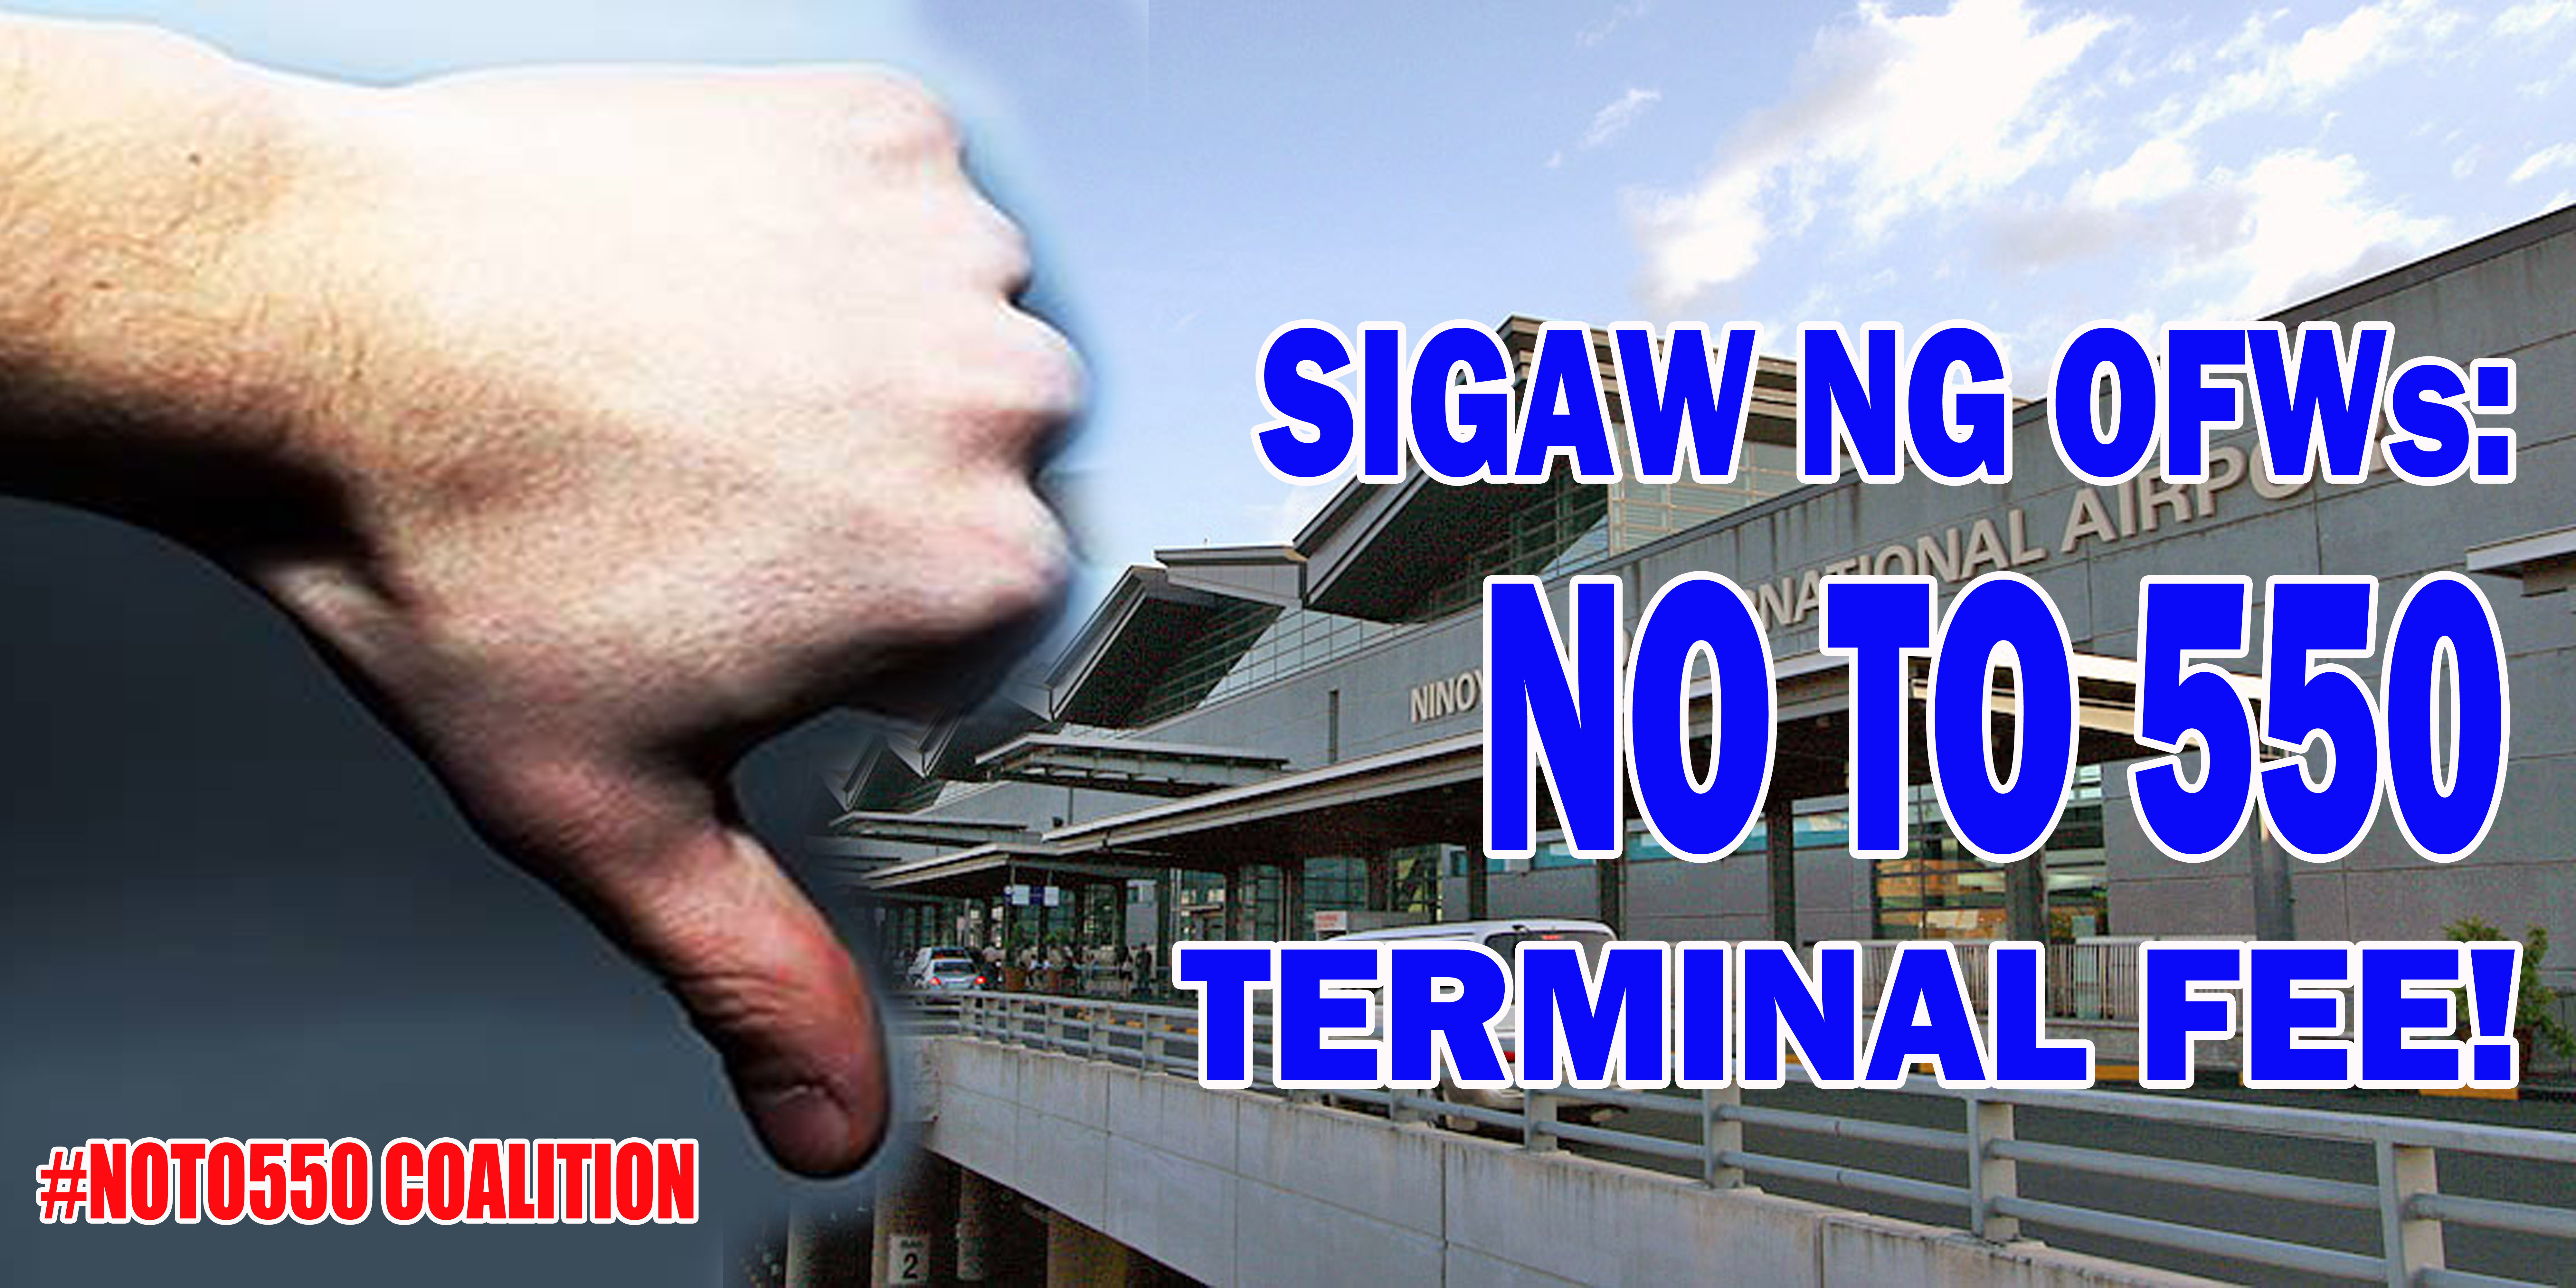 OFW groups welcome Senate probe on integrated airport terminal fee